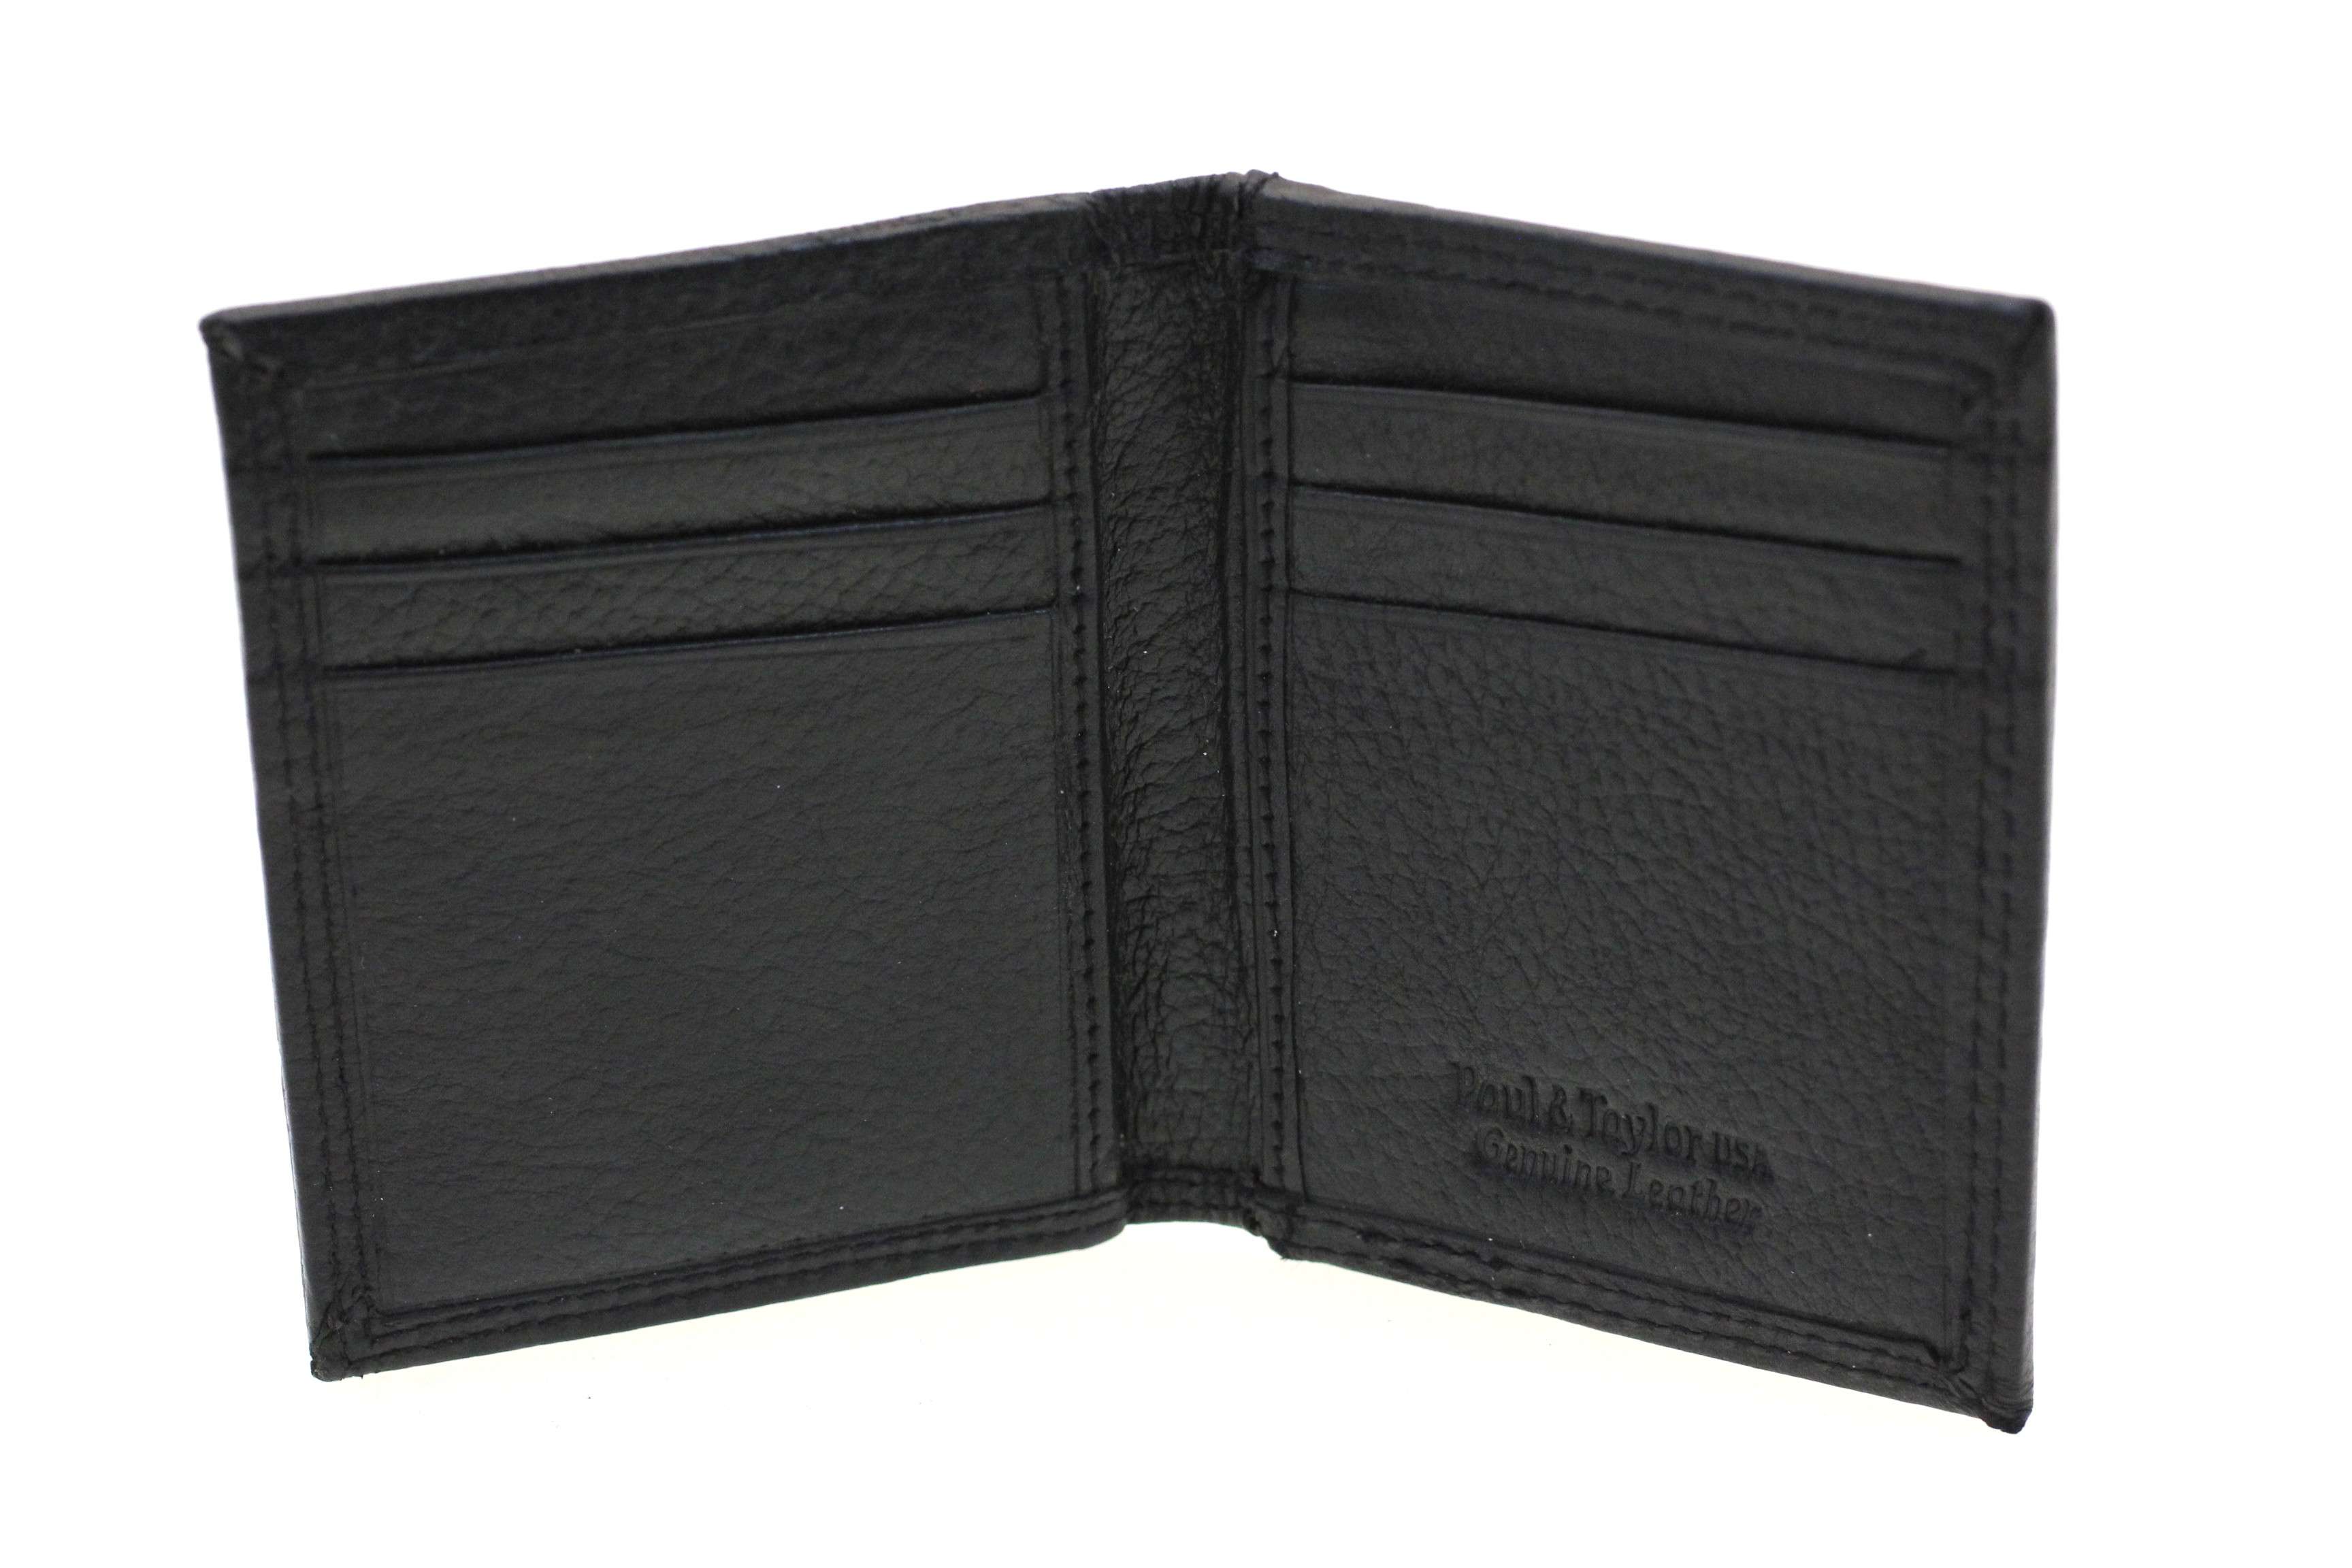 picture 2 of 4 - Bifold Card Holder